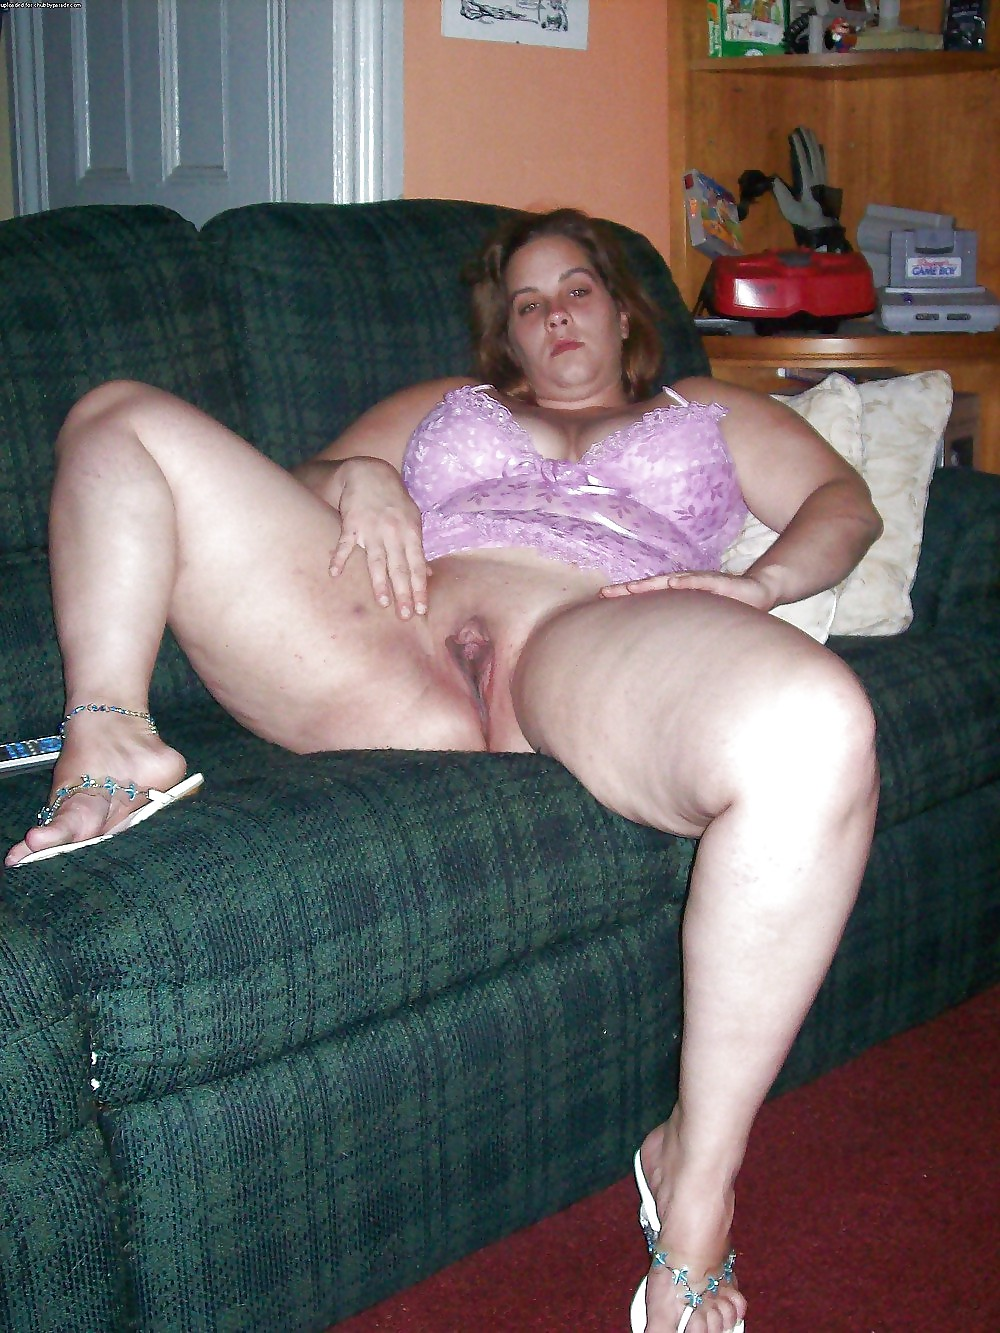 Bbw With Open Legs - 20 Pics  Xhamster-2484